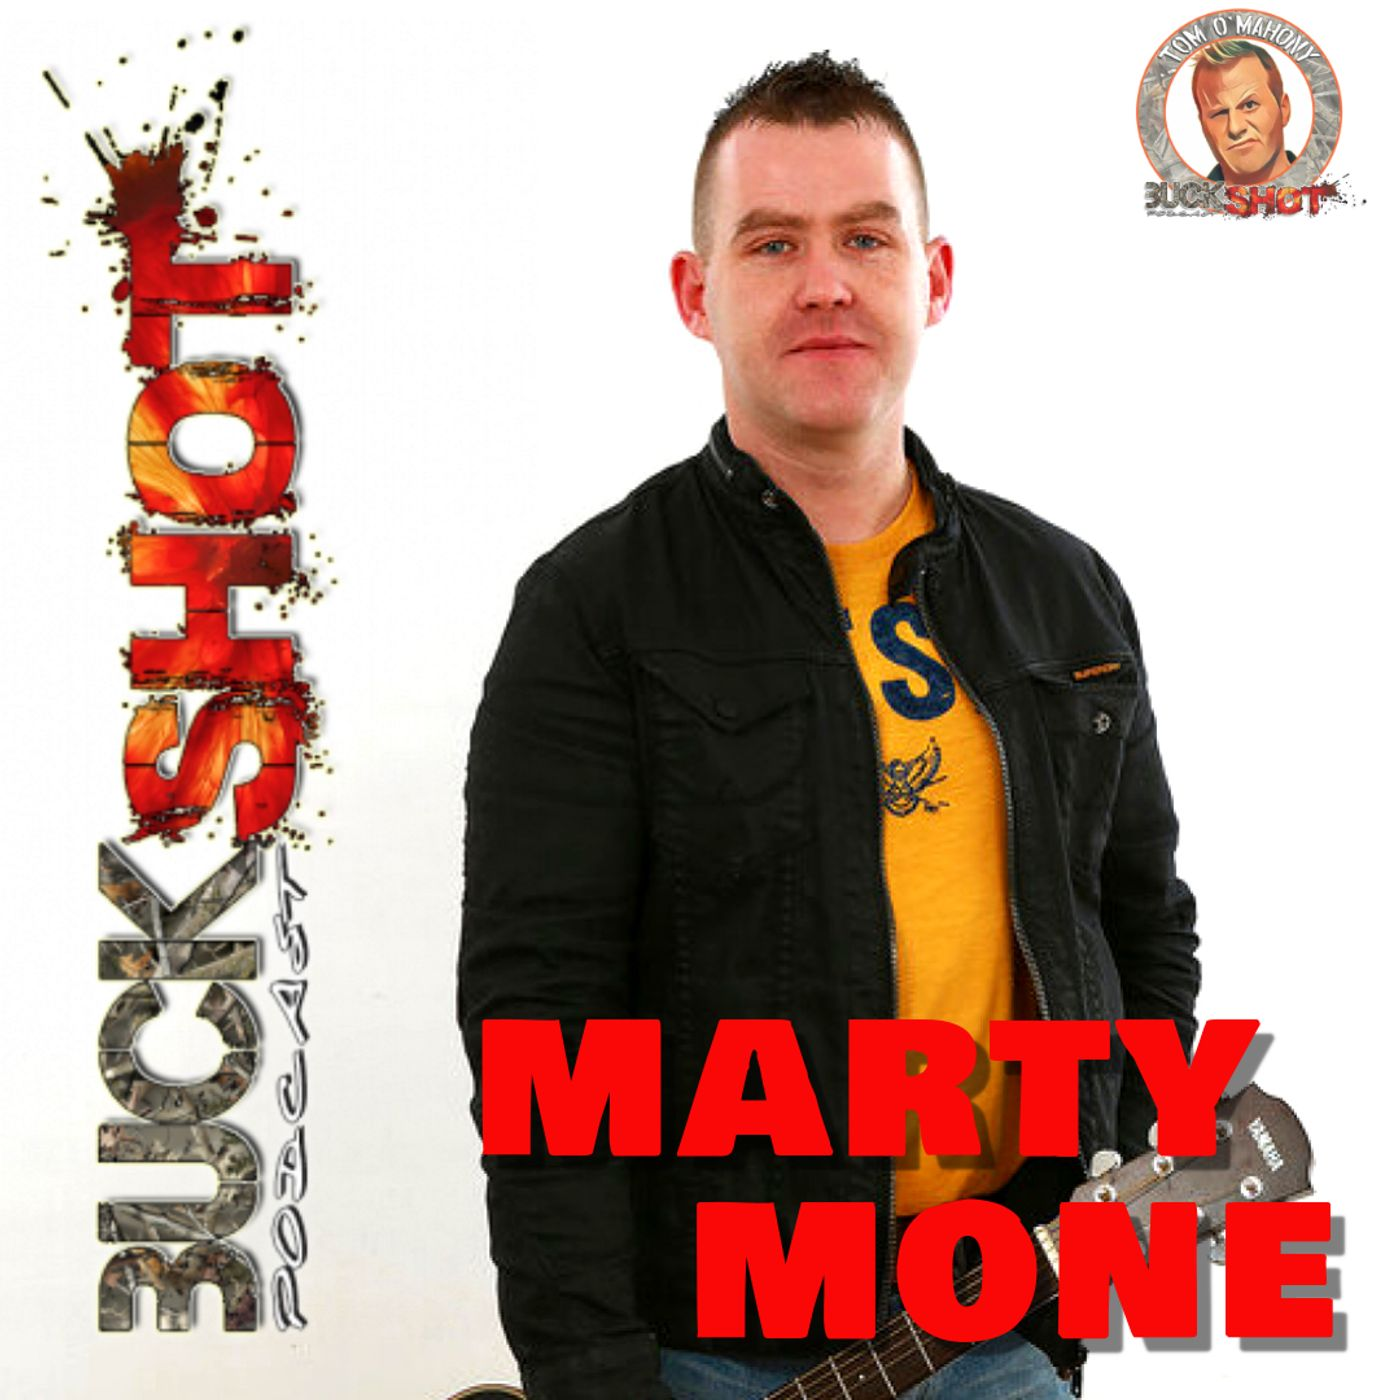 156 - Marty Mone